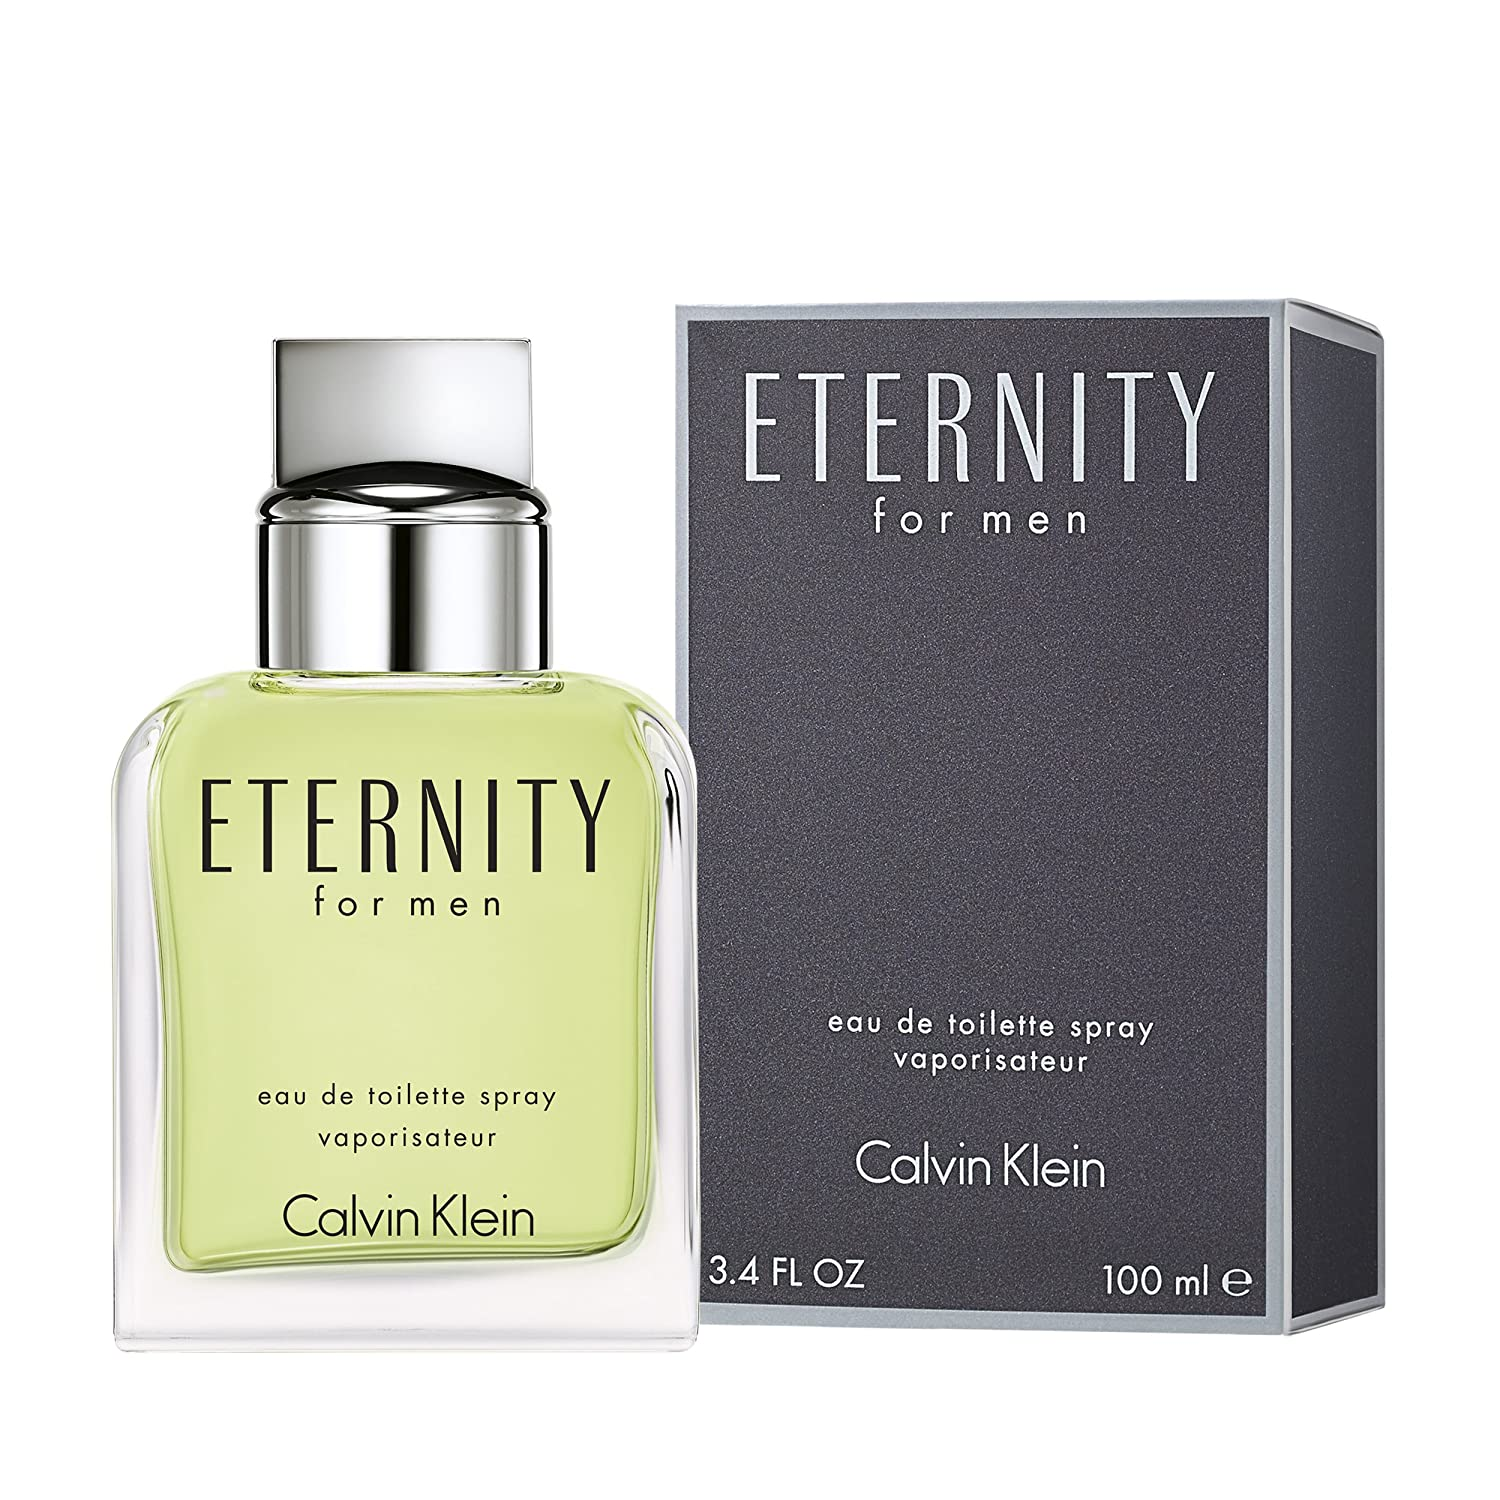 02fb3775a8ddef Calvin Klein ETERNITY for Men Eau de Toilette, 3.4 Fl Oz